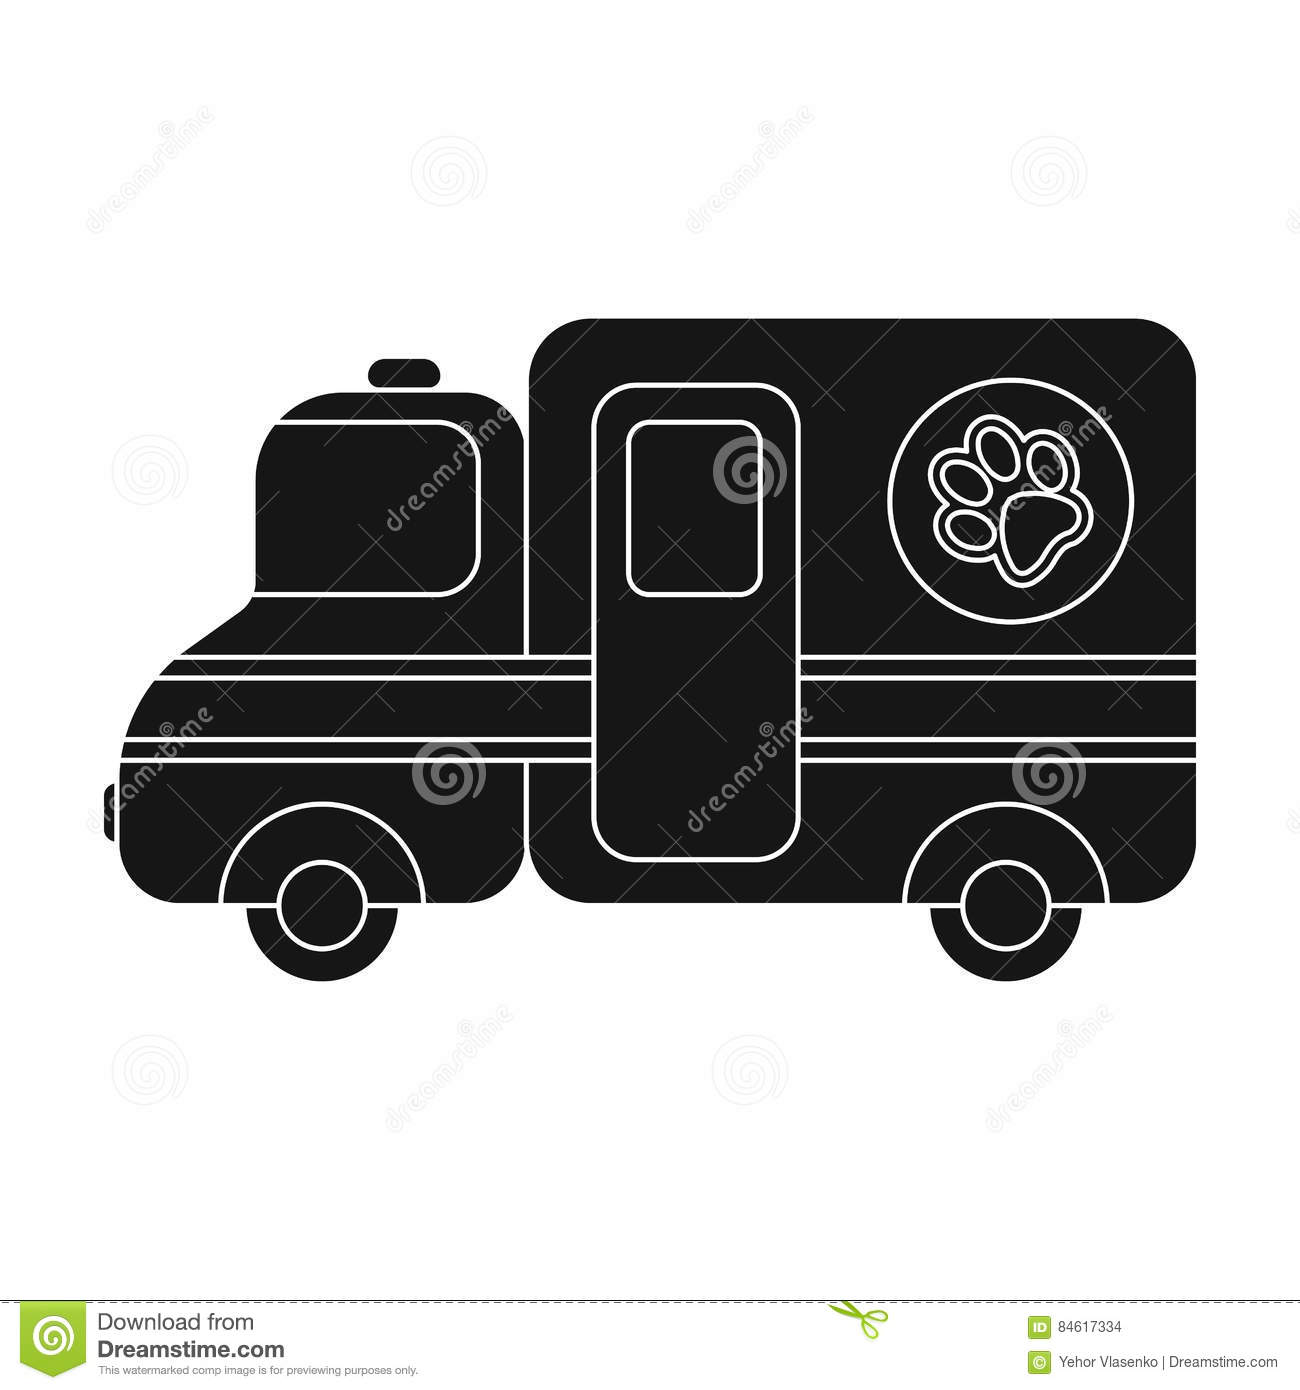 veterinary ambulance icon in black style isolated on white Person Clip Art Take Part in Examination Clip Art